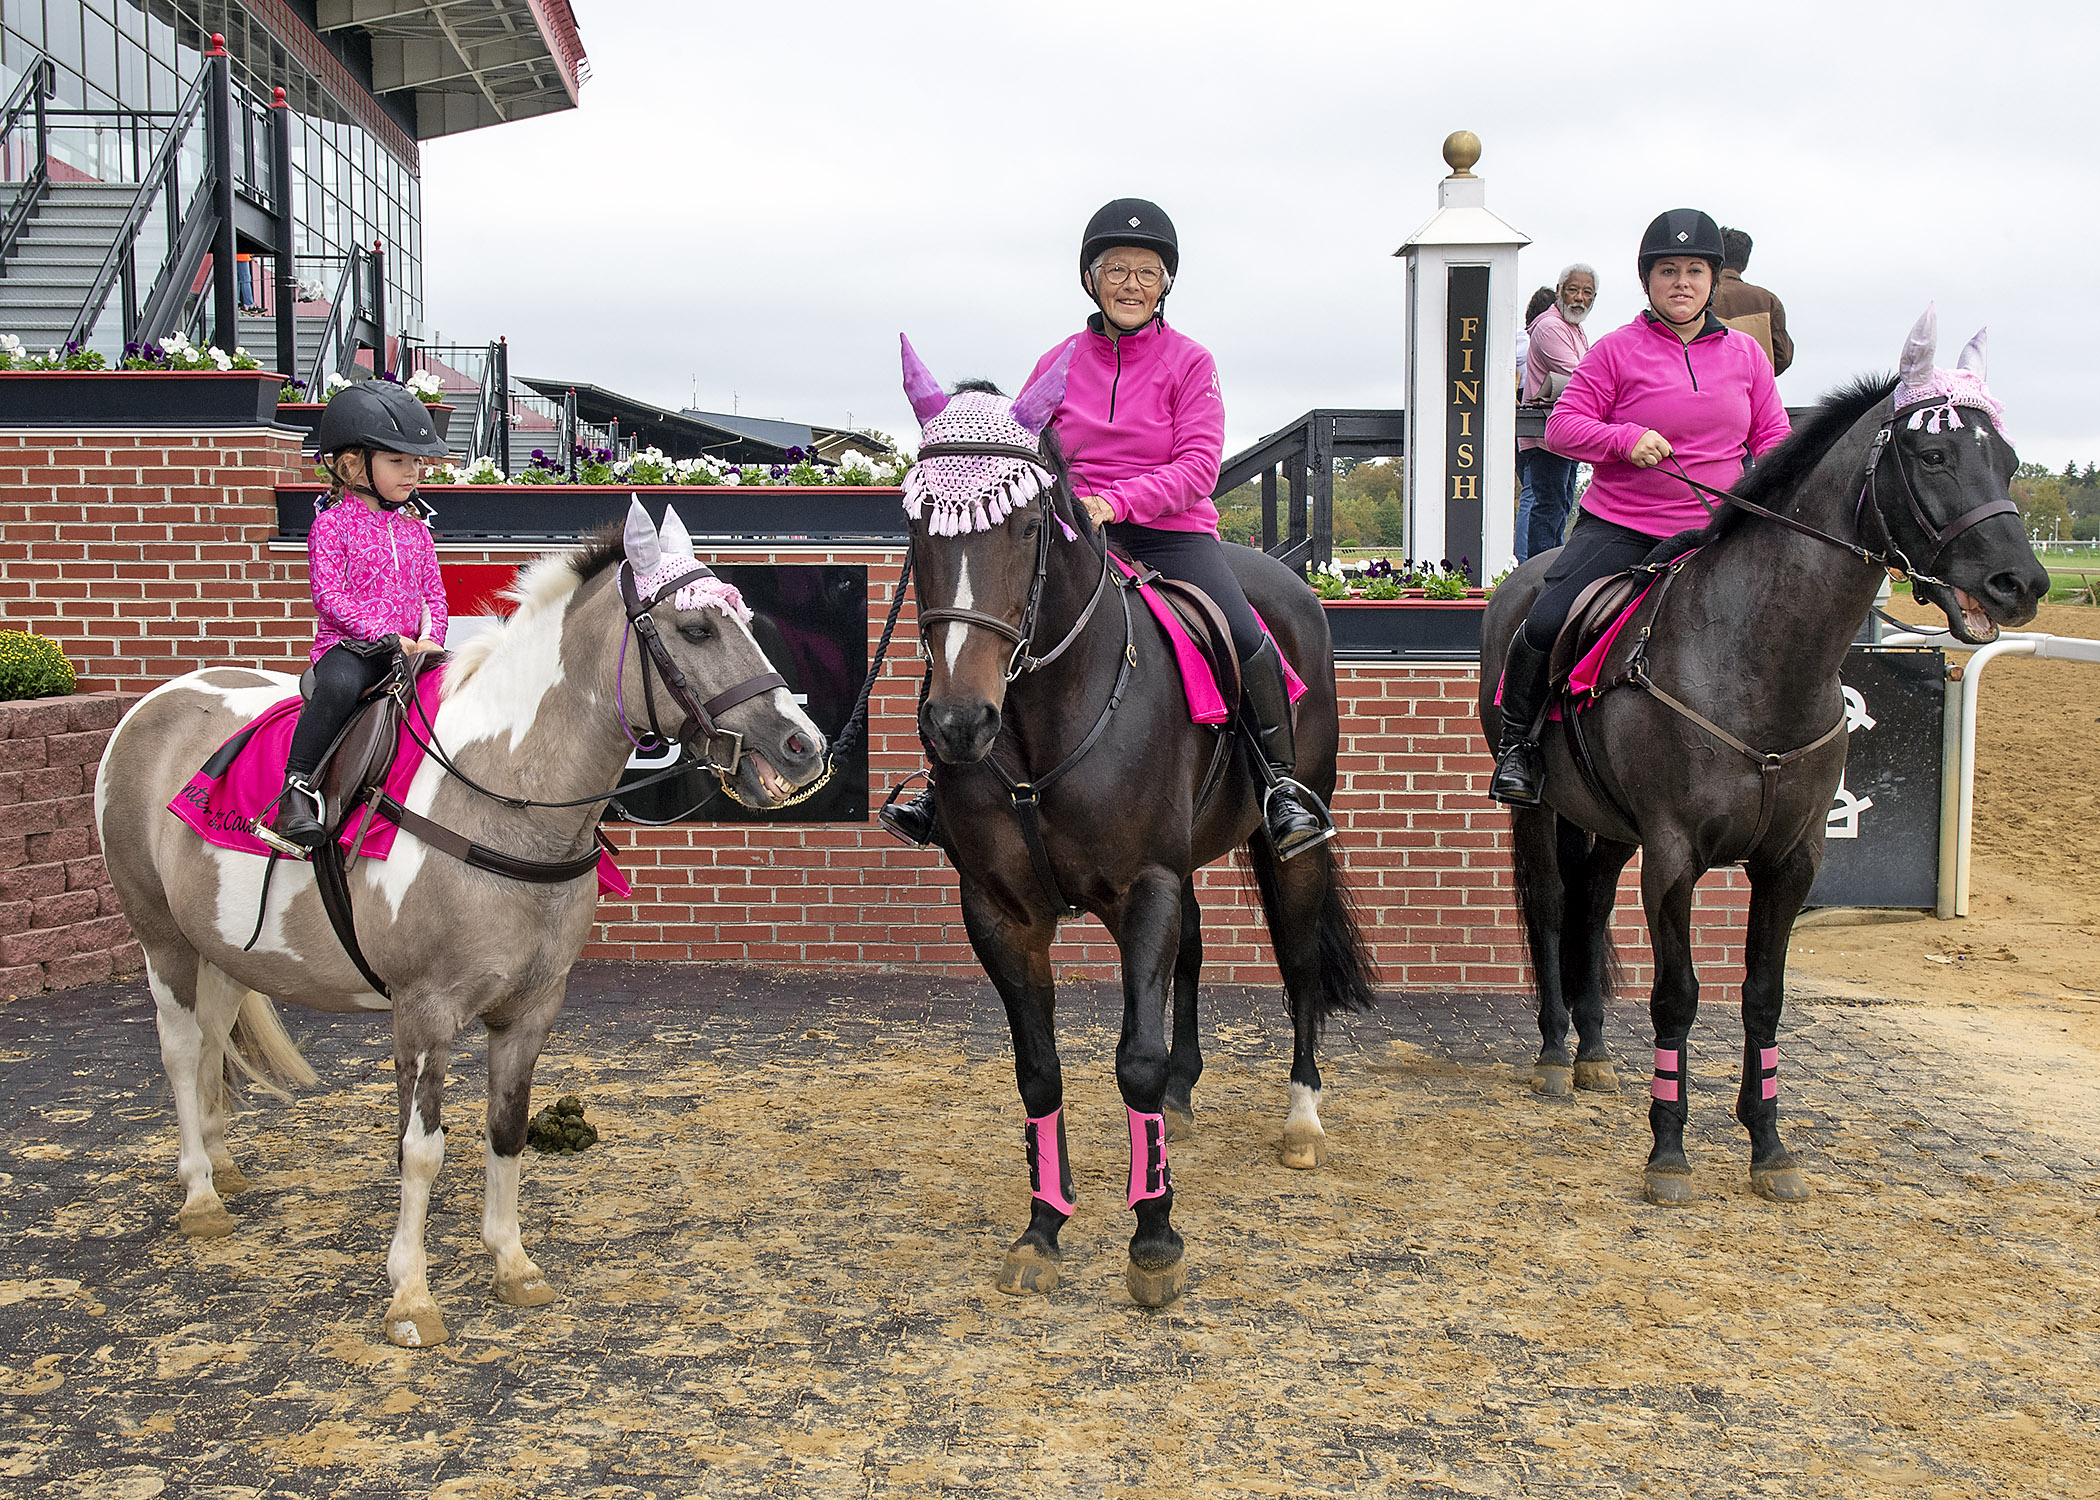 Pimlico Hosts Canter For a Cause